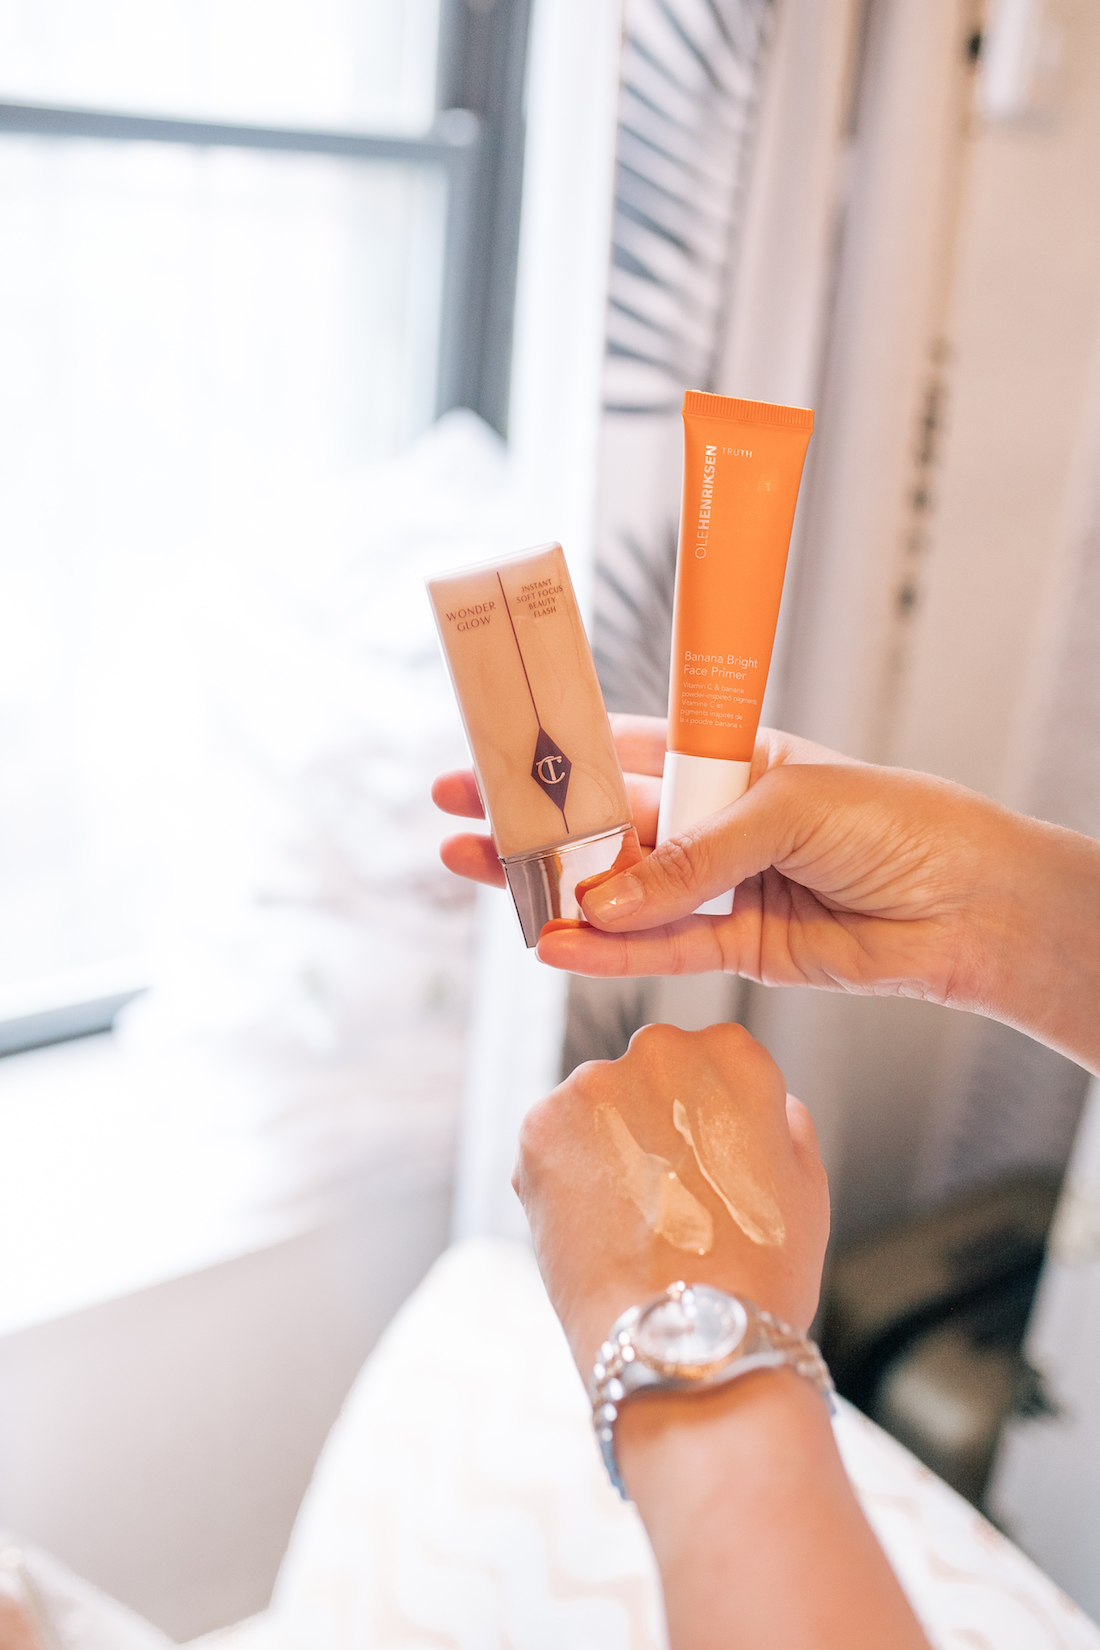 Charlotte Tilbury's Wonderglow Primer and OLEHENRIKSEN's Banana Bright Primer.